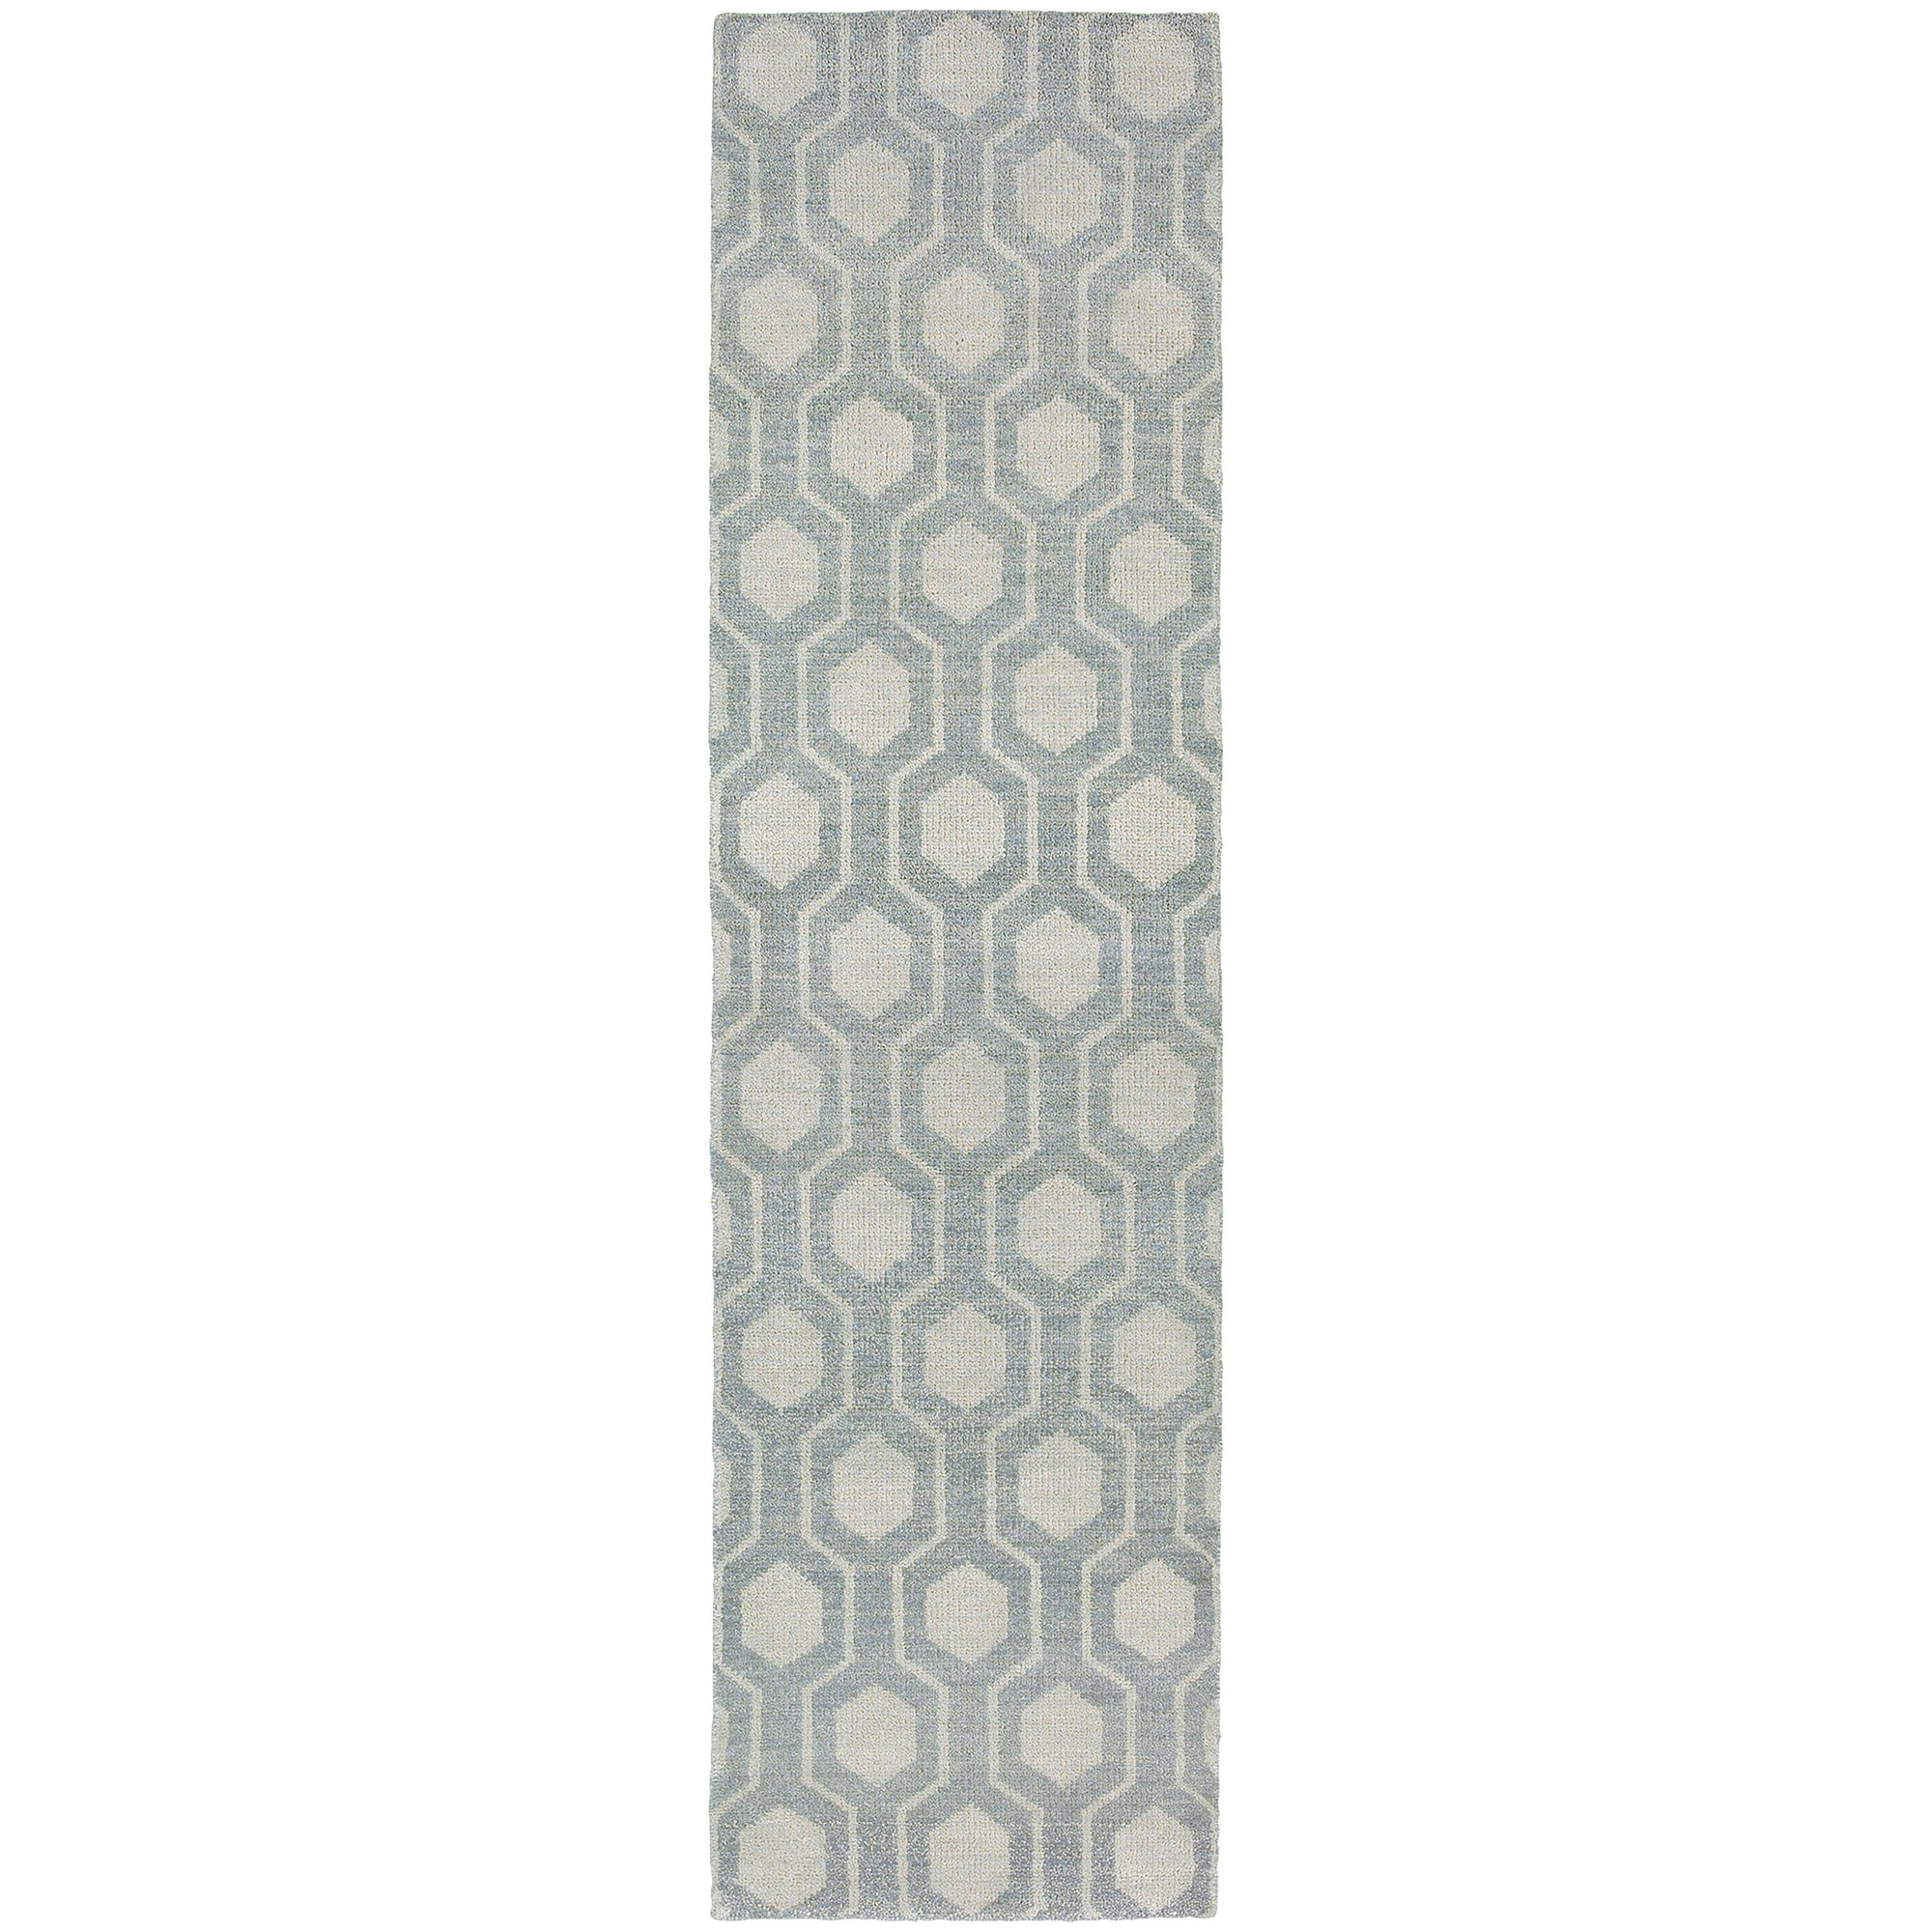 "Tommy Bahama Home Maddox 56506 Blue/Beige-Area Rug-Tommy Bahama Home-3' 6"" X 5' 6""-The Rug Truck"